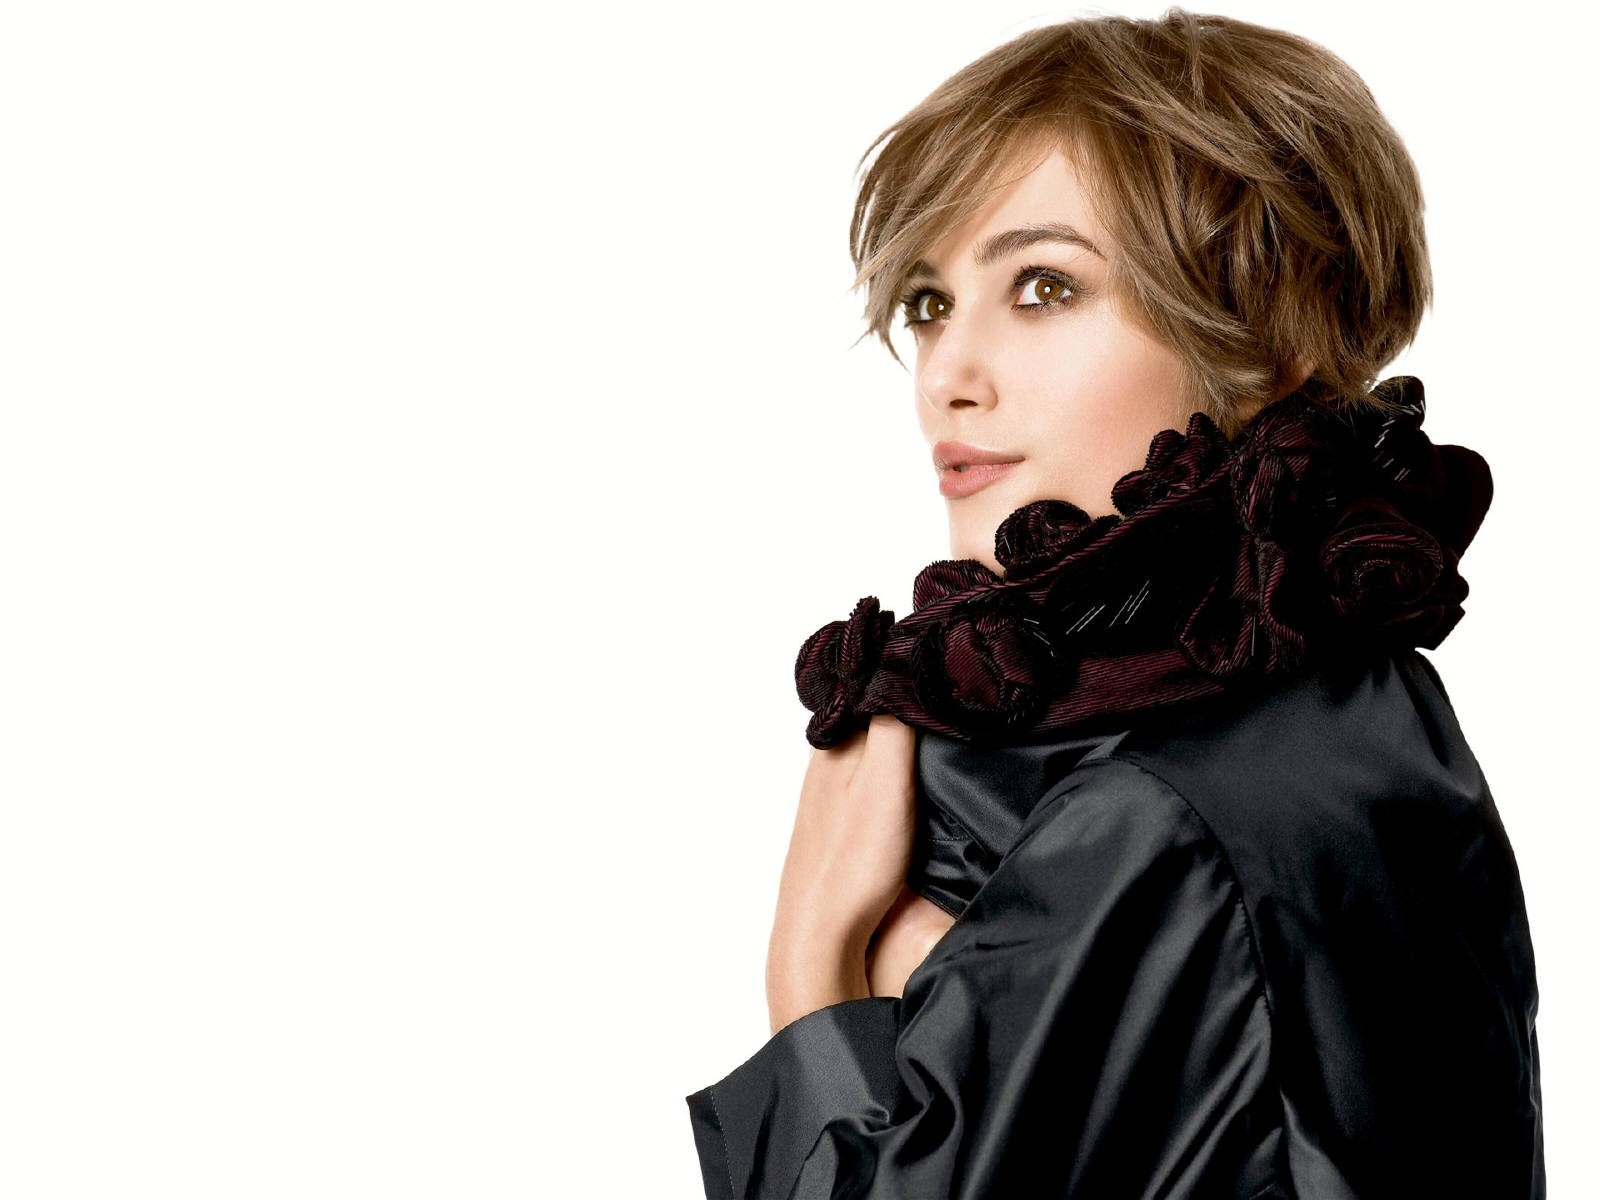 Wallpaper di Keira Knightley, elegante signora in nero